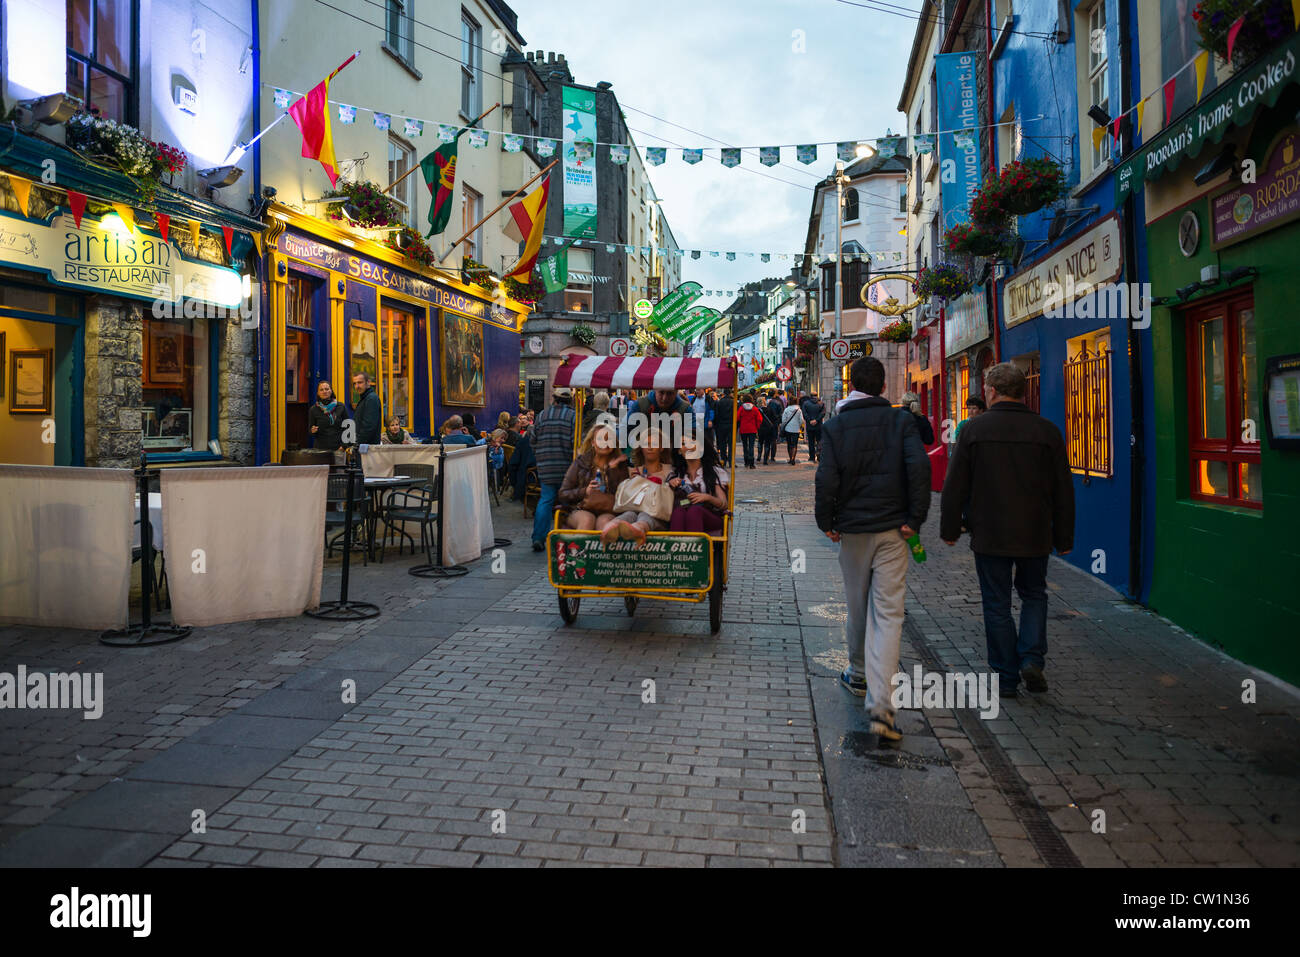 Latin quarter shops at dusk in Galway City centre. County Galway, Ireland. - Stock Image